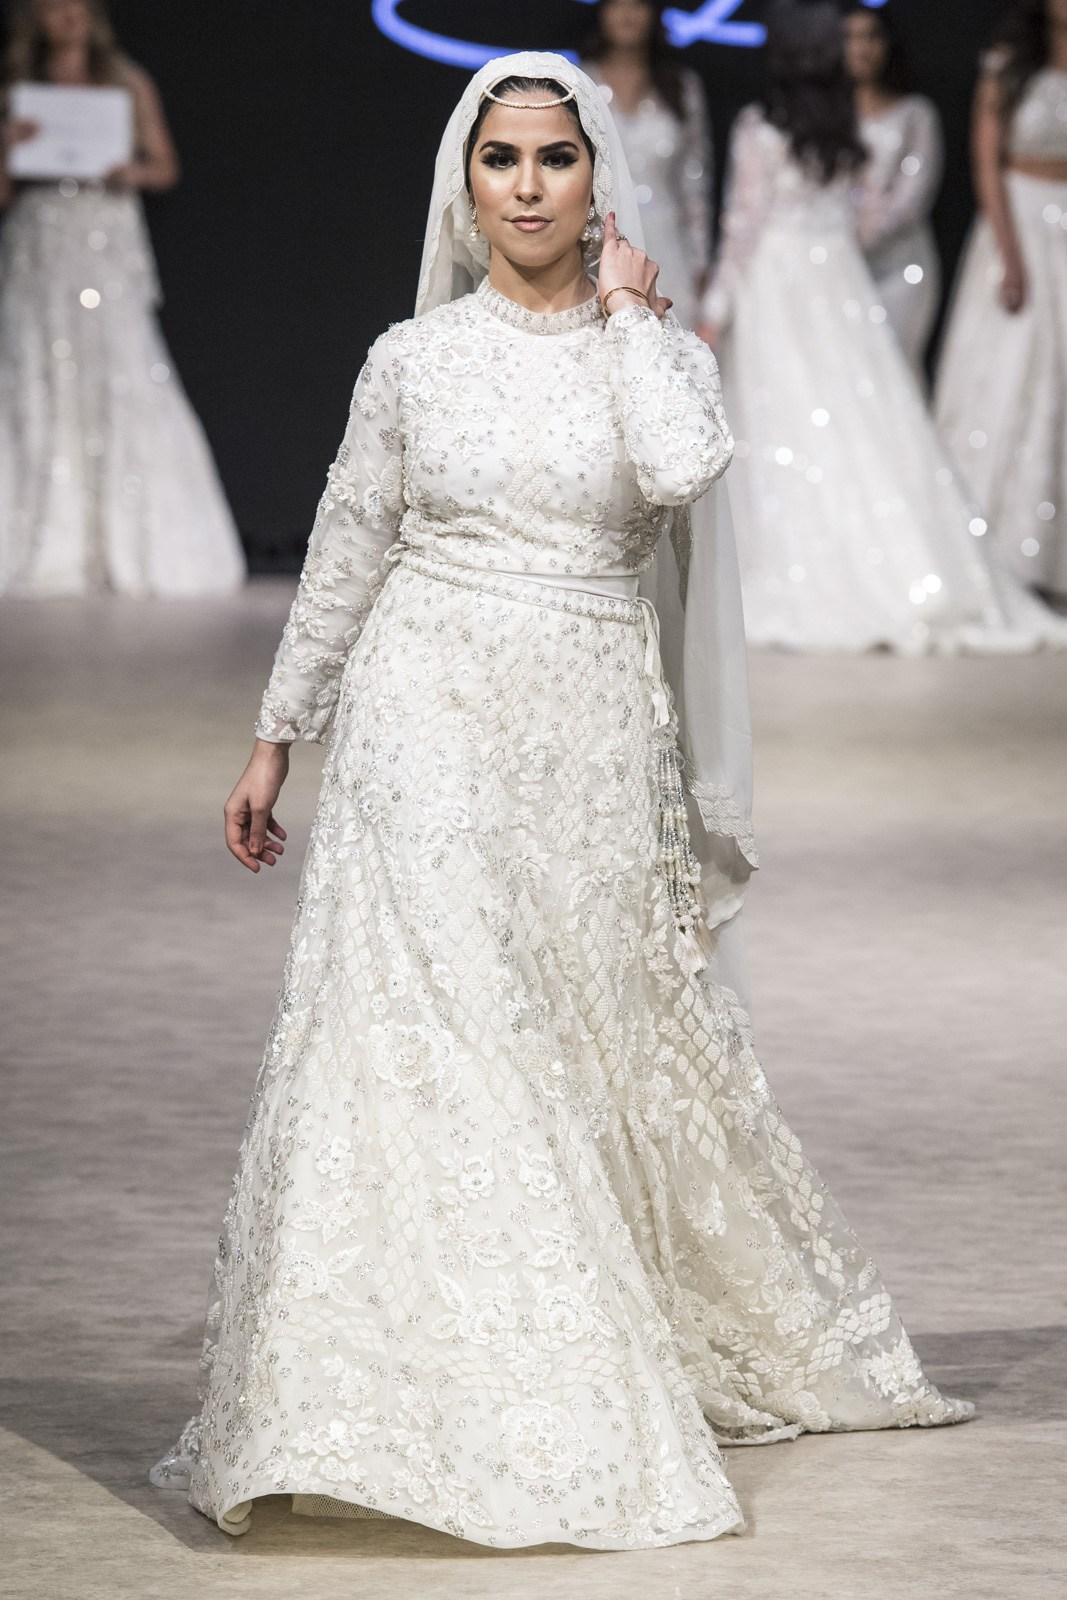 Donate Wedding Dress.Where To Donate Wedding Dress In Vancouver Dacc